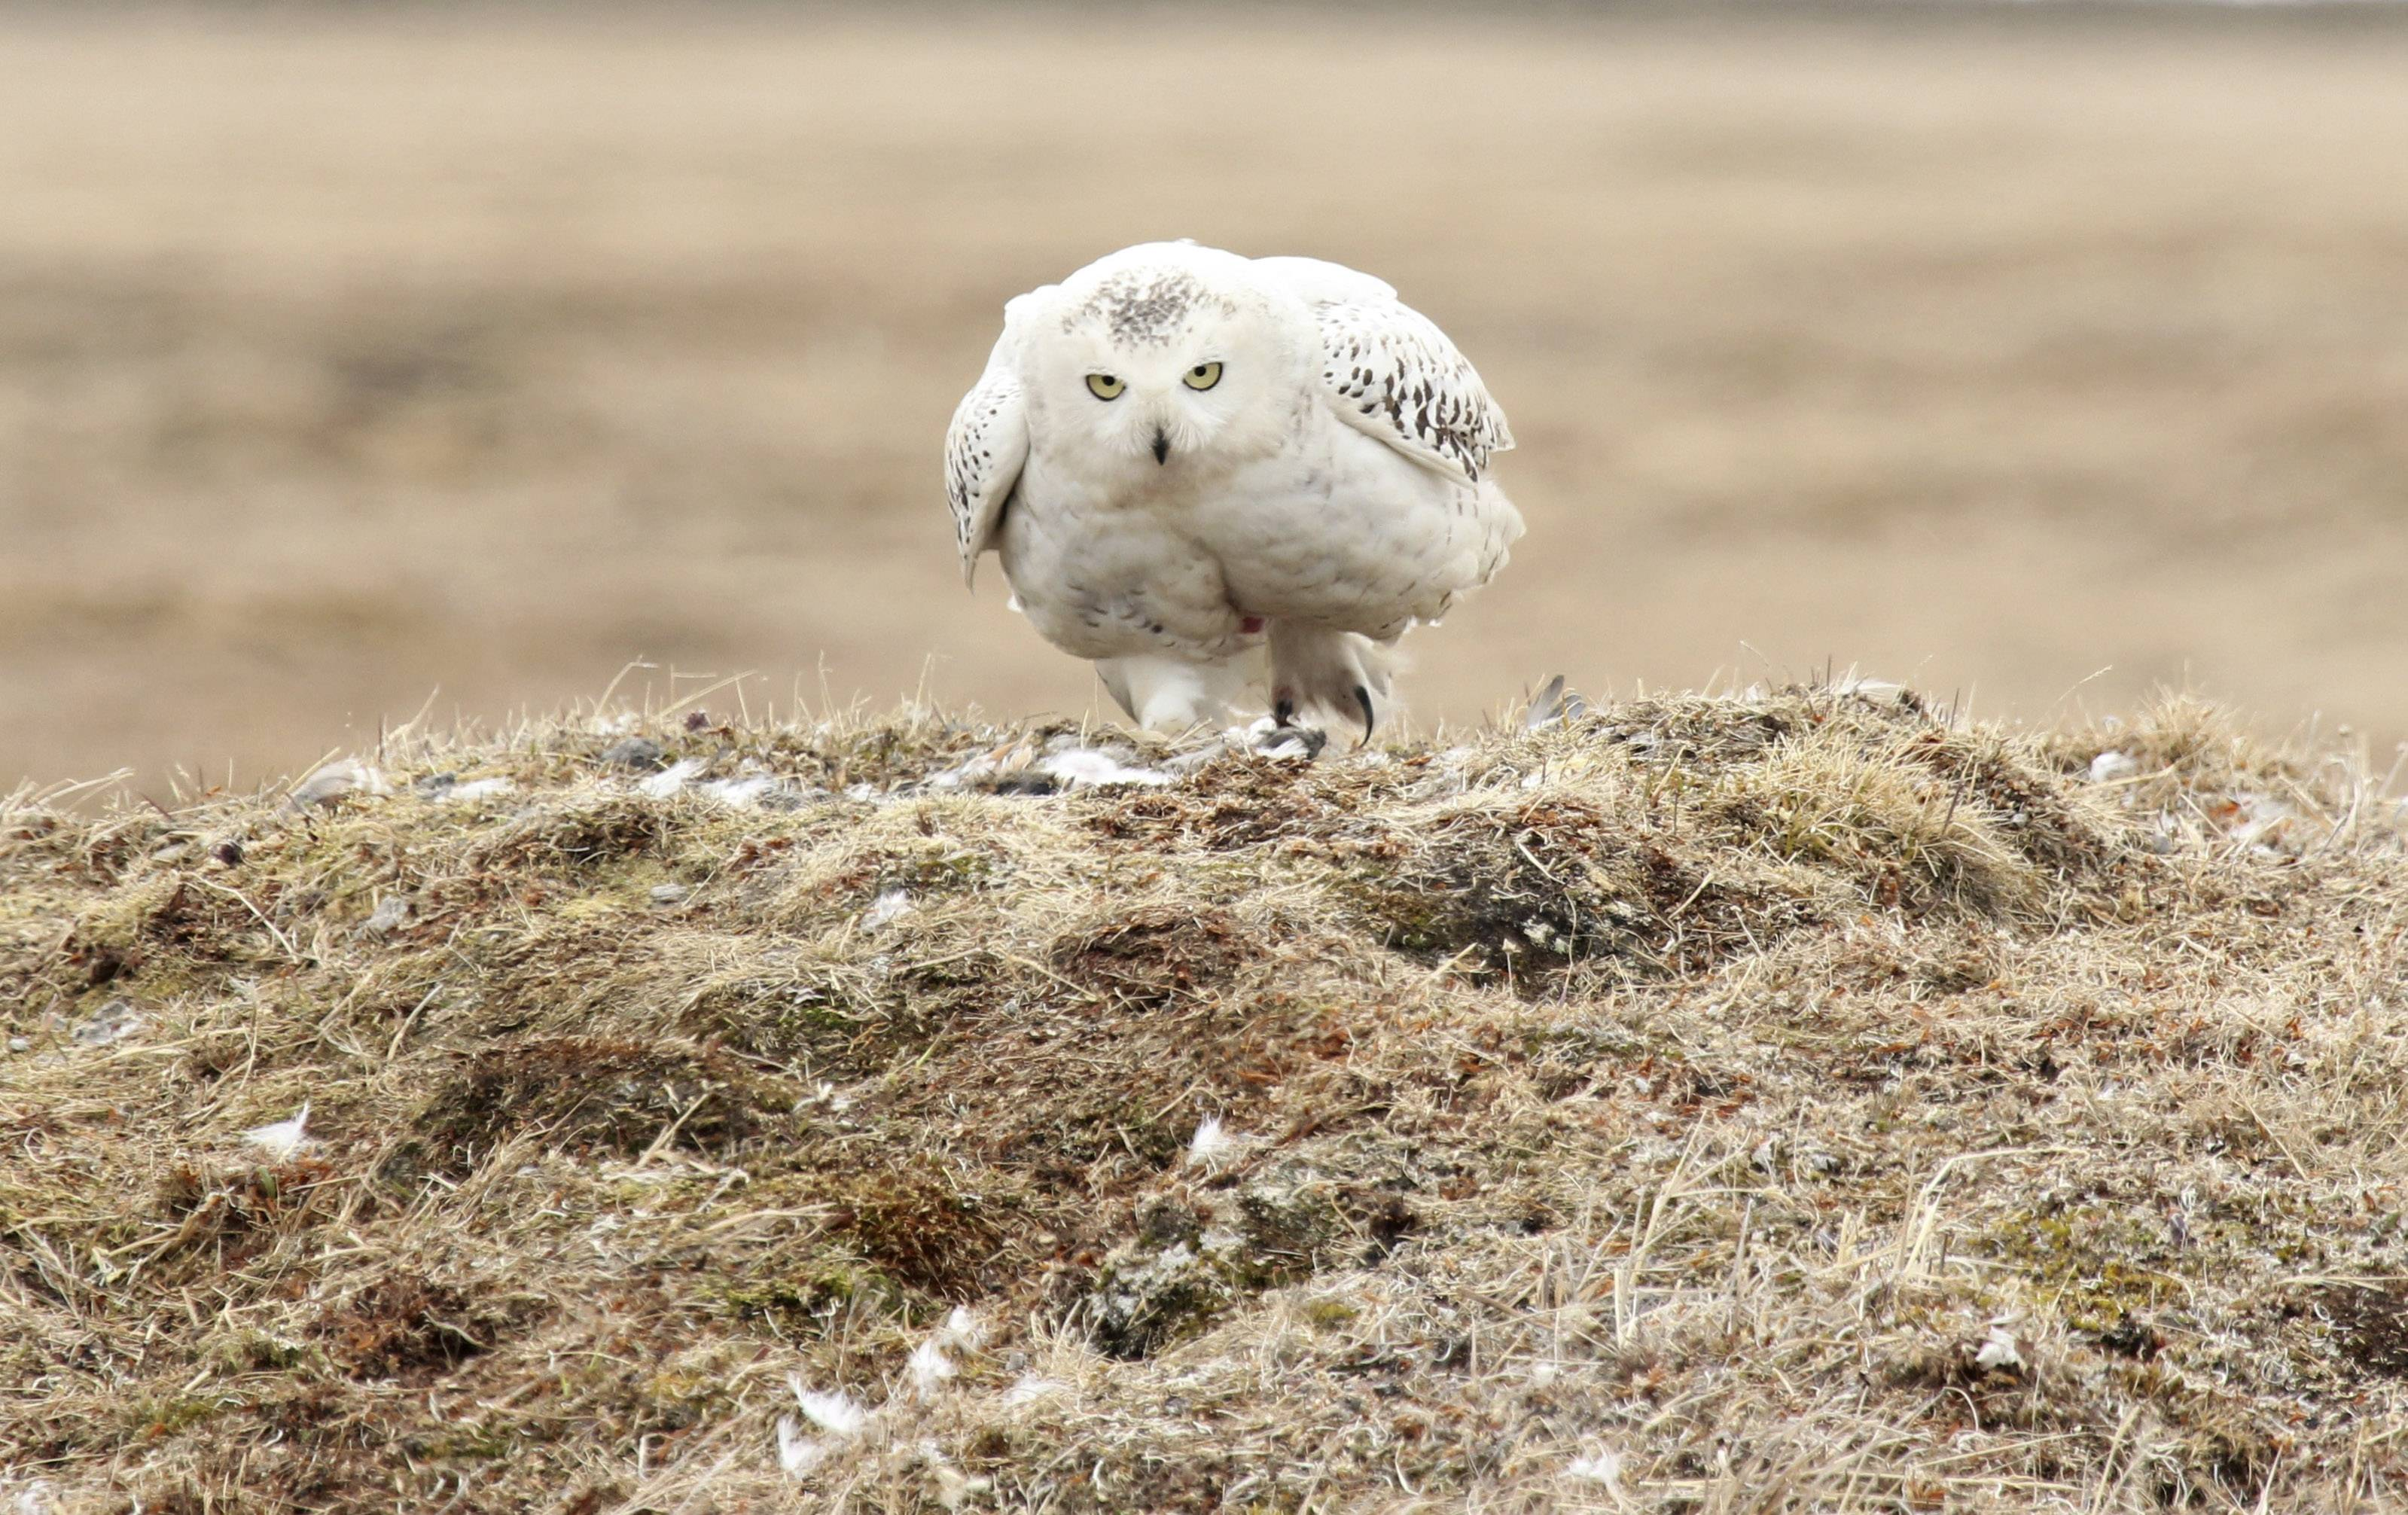 An Arctic snowy owl sits near the site of the explore.org live camera set up in Barrow, Alaska. A high-definition camera on a burrow near the nation's northernmost city is allowing researchers and any bird viewer with an Internet connection an unfettered view into the nesting den of an Arctic snowy owl.